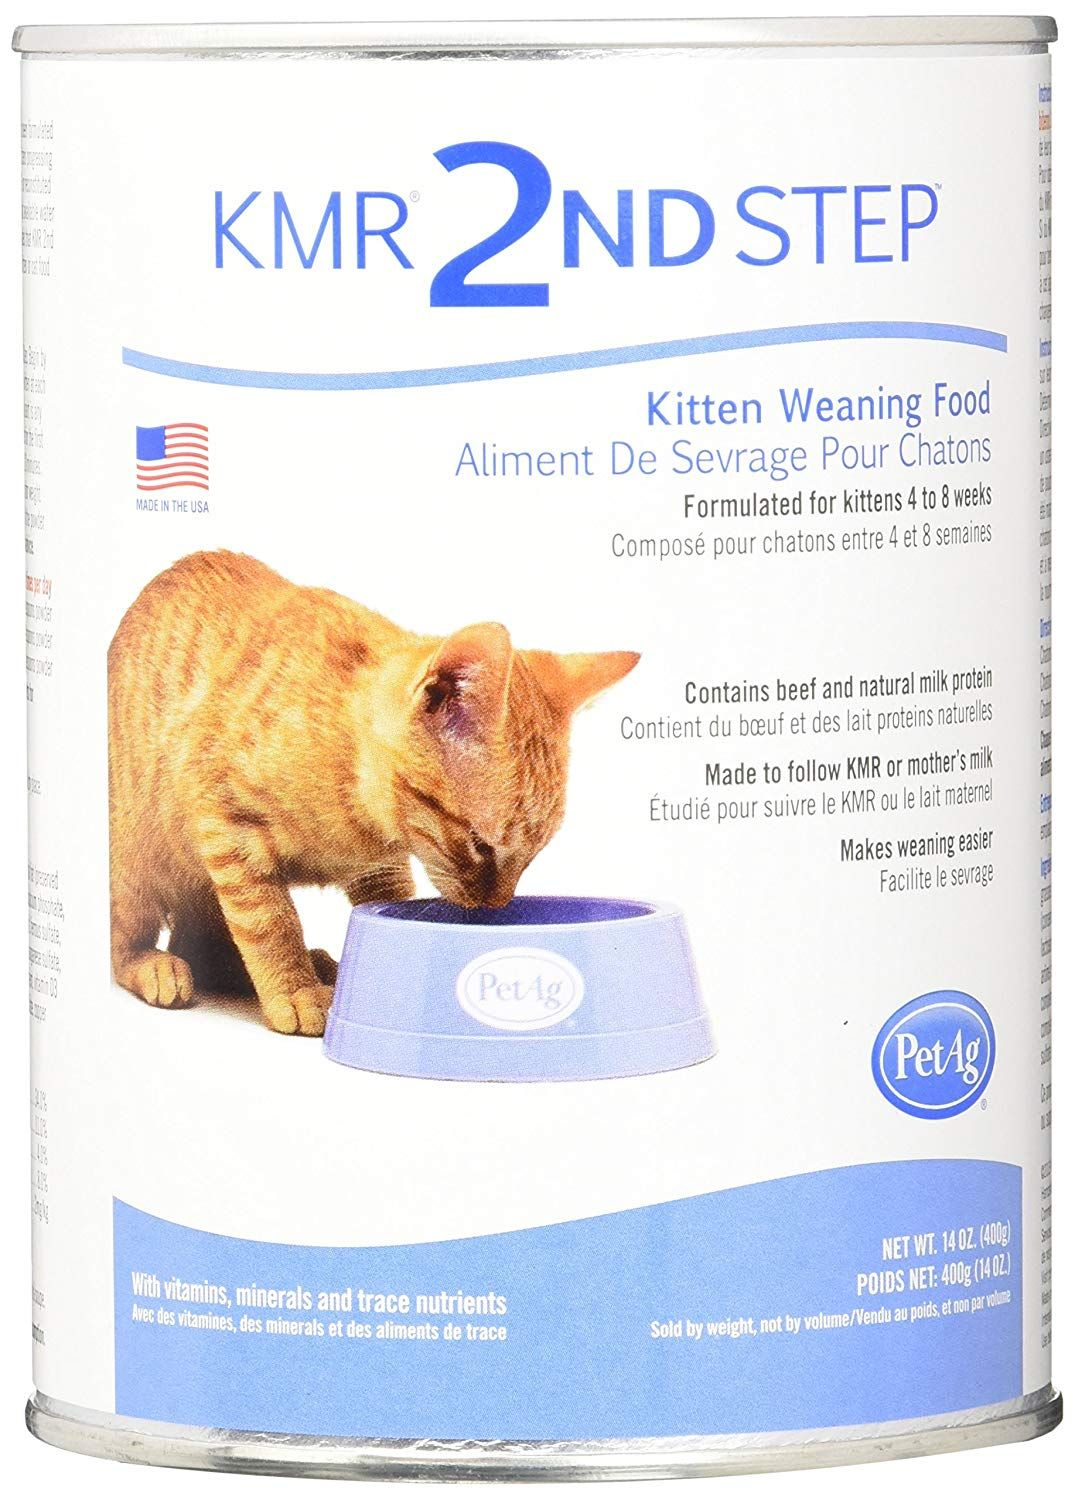 Pet Ag Petag Kmr 2nd Step Kitten Weaning Formula Powder Great Having You For Visiting Our Photo This Is Our Affilia Weaning Foods Weaning Cat Food Coupons